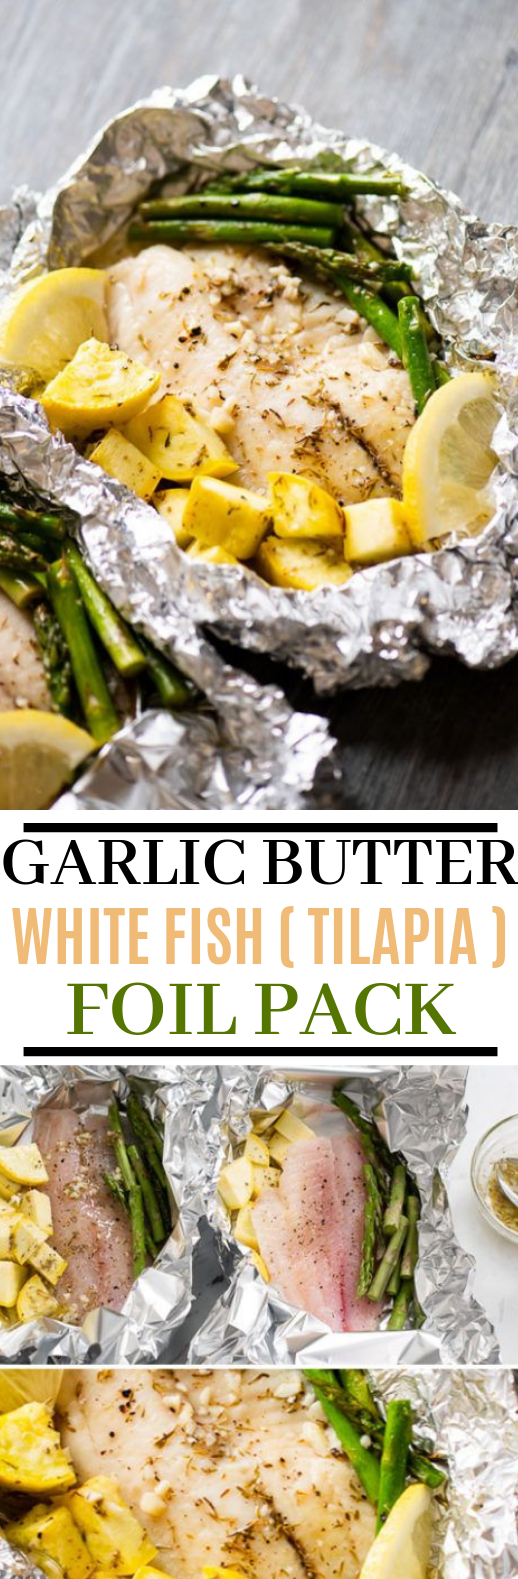 15 minute Foil Baked Garlic Butter White Fish (Tilapia) #healthy #glutenfree